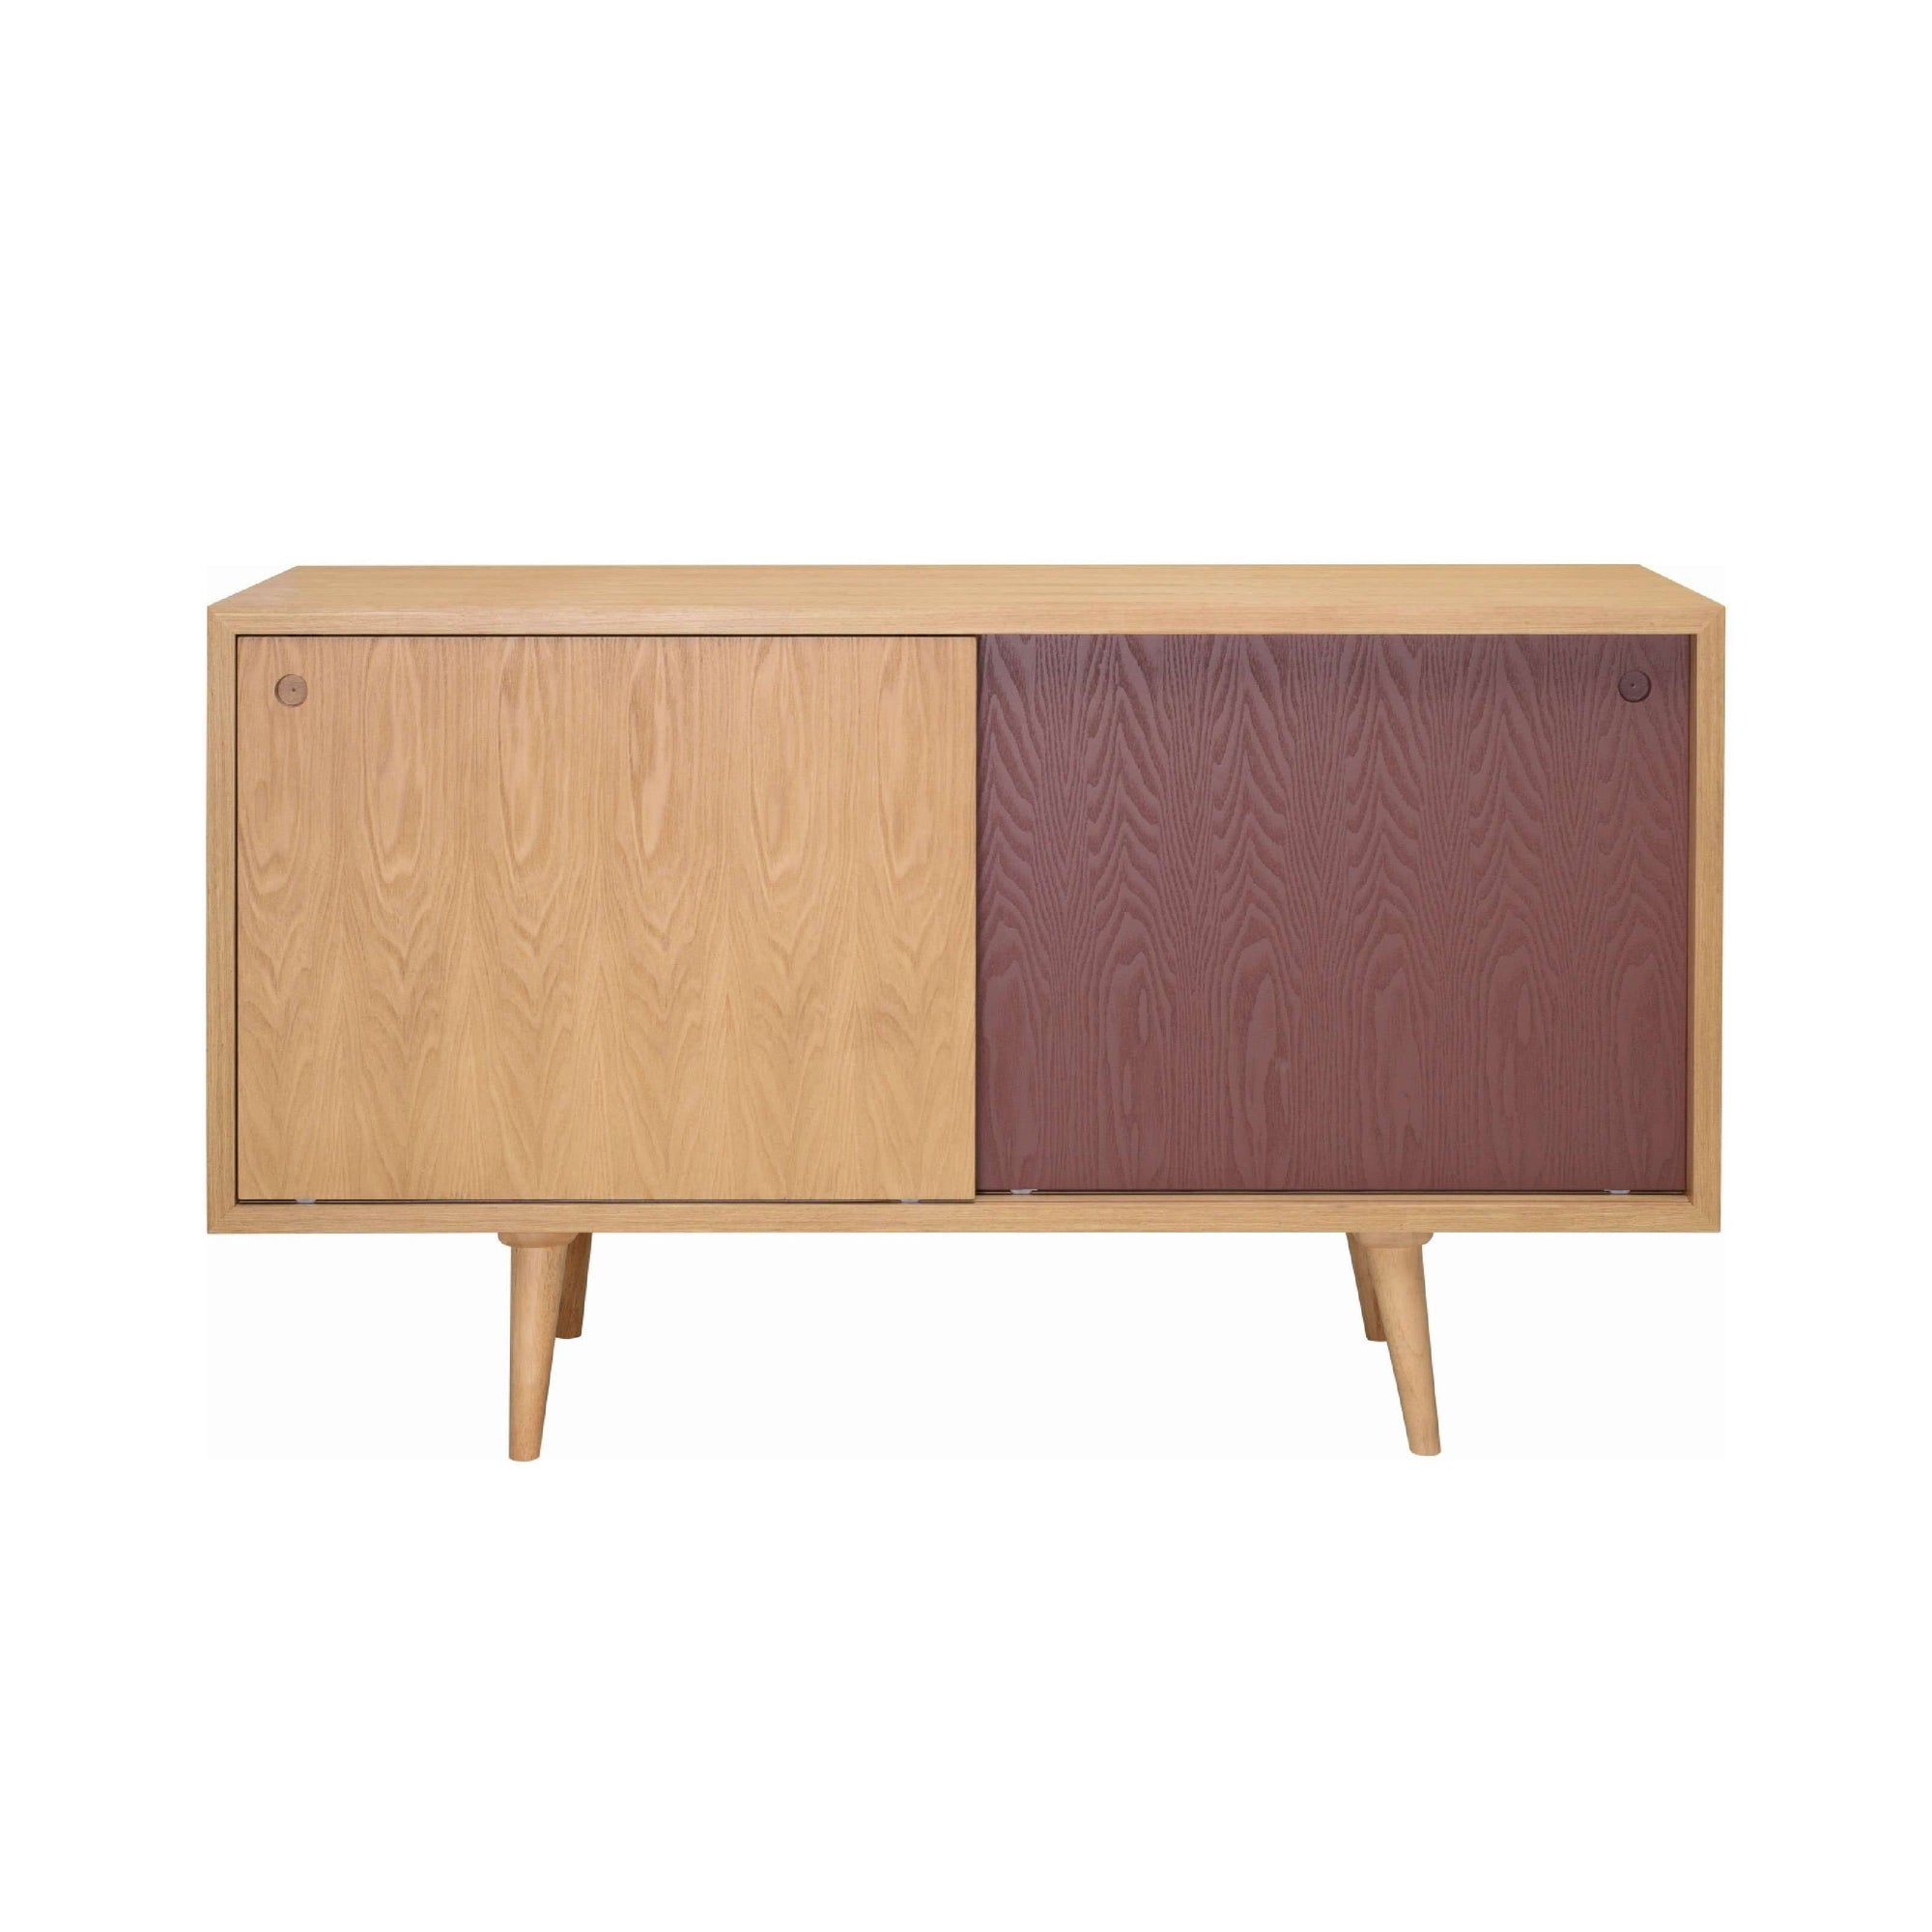 LOCKE Sideboard On Natural Colour Body, Natural And Penny Brown Colour Door